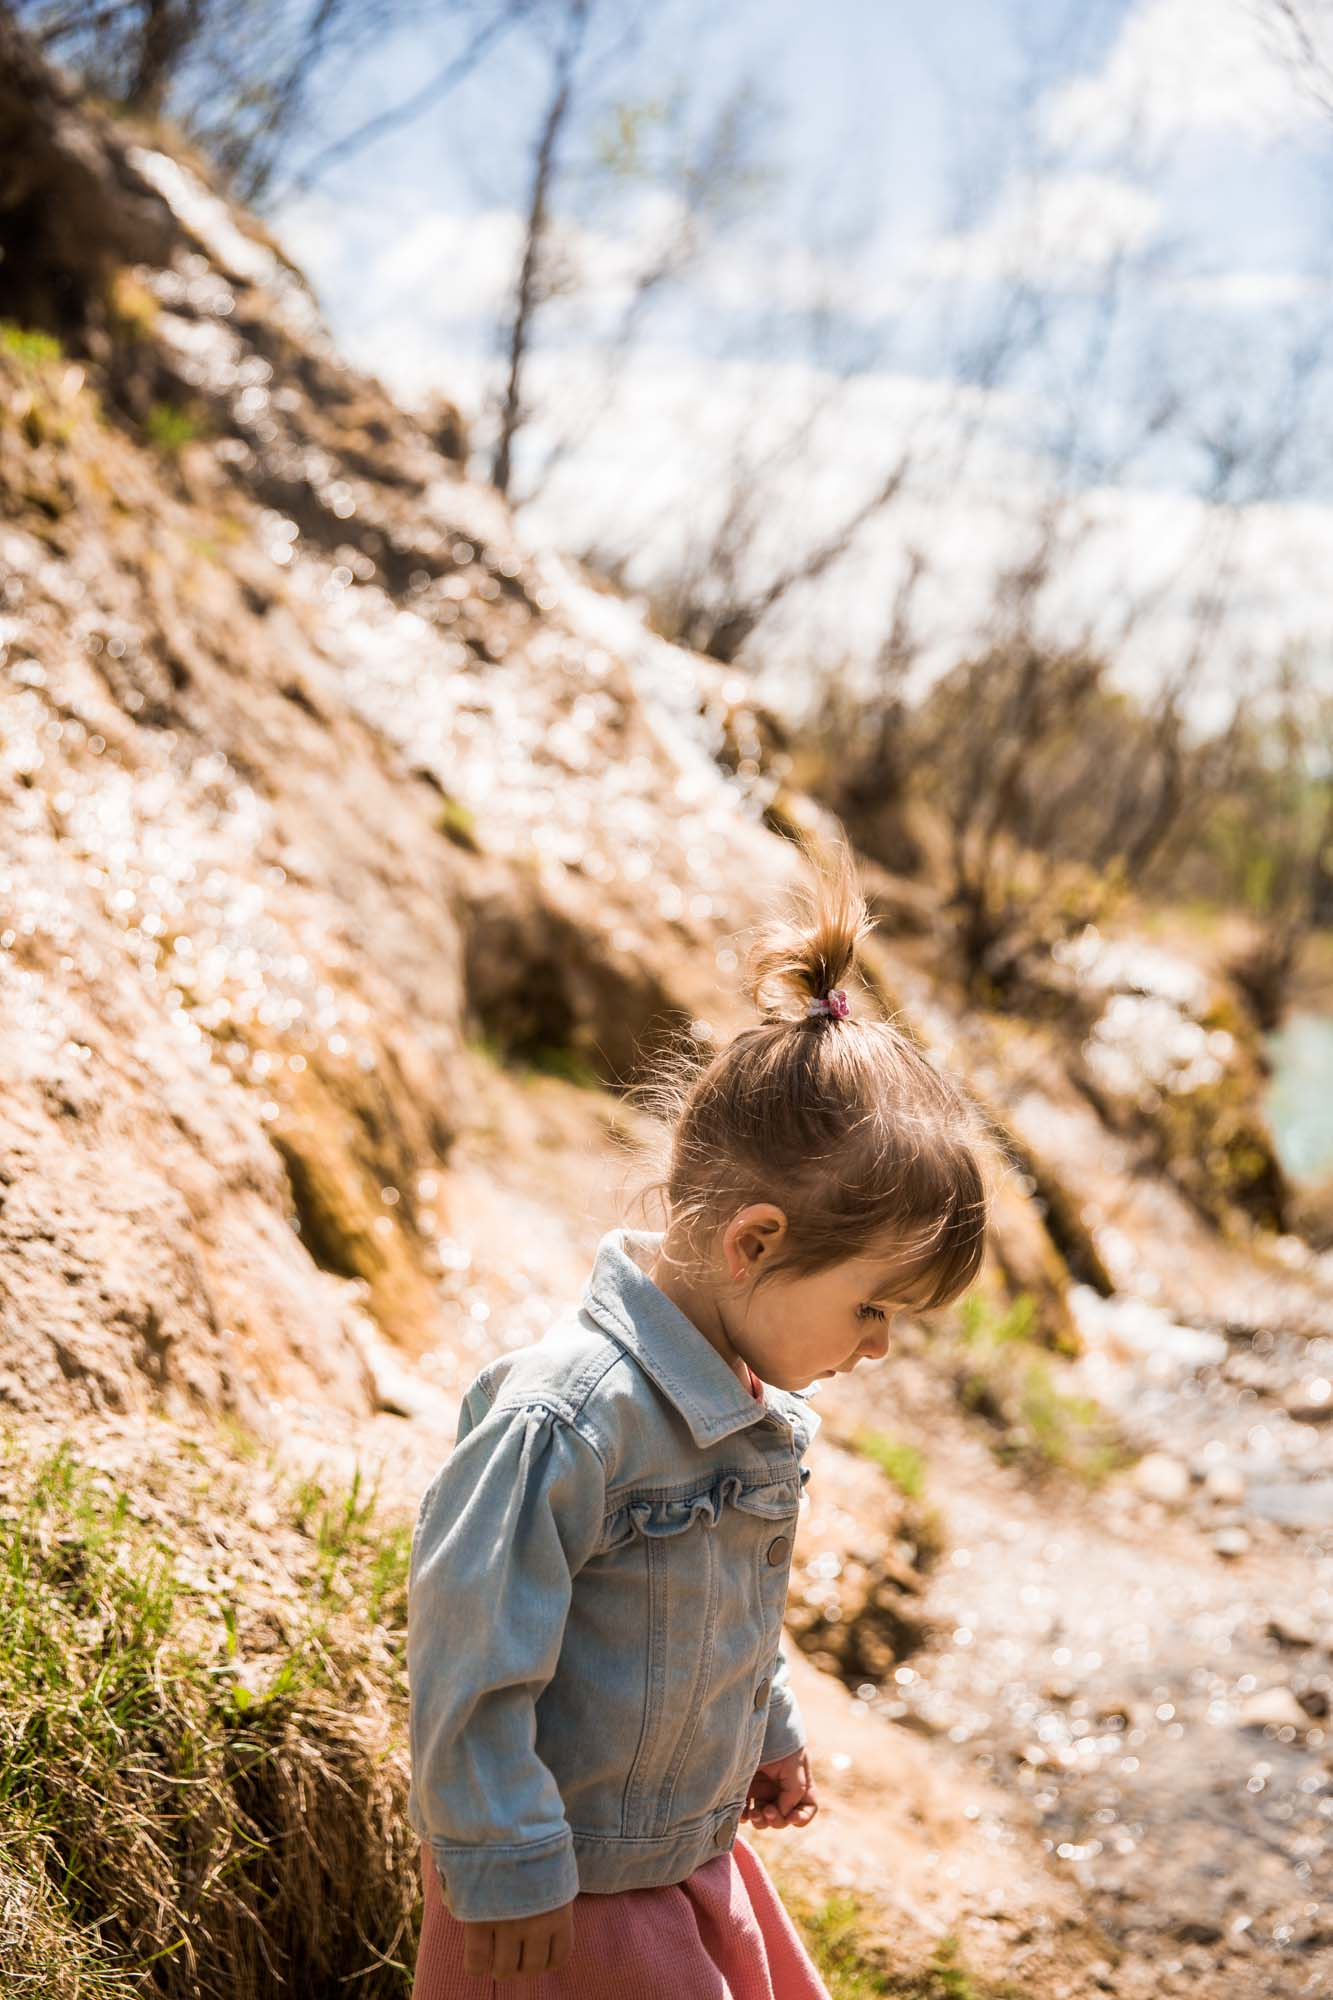 Calgary family photographer, family photos at Waterfall Valley in Bowmont Park